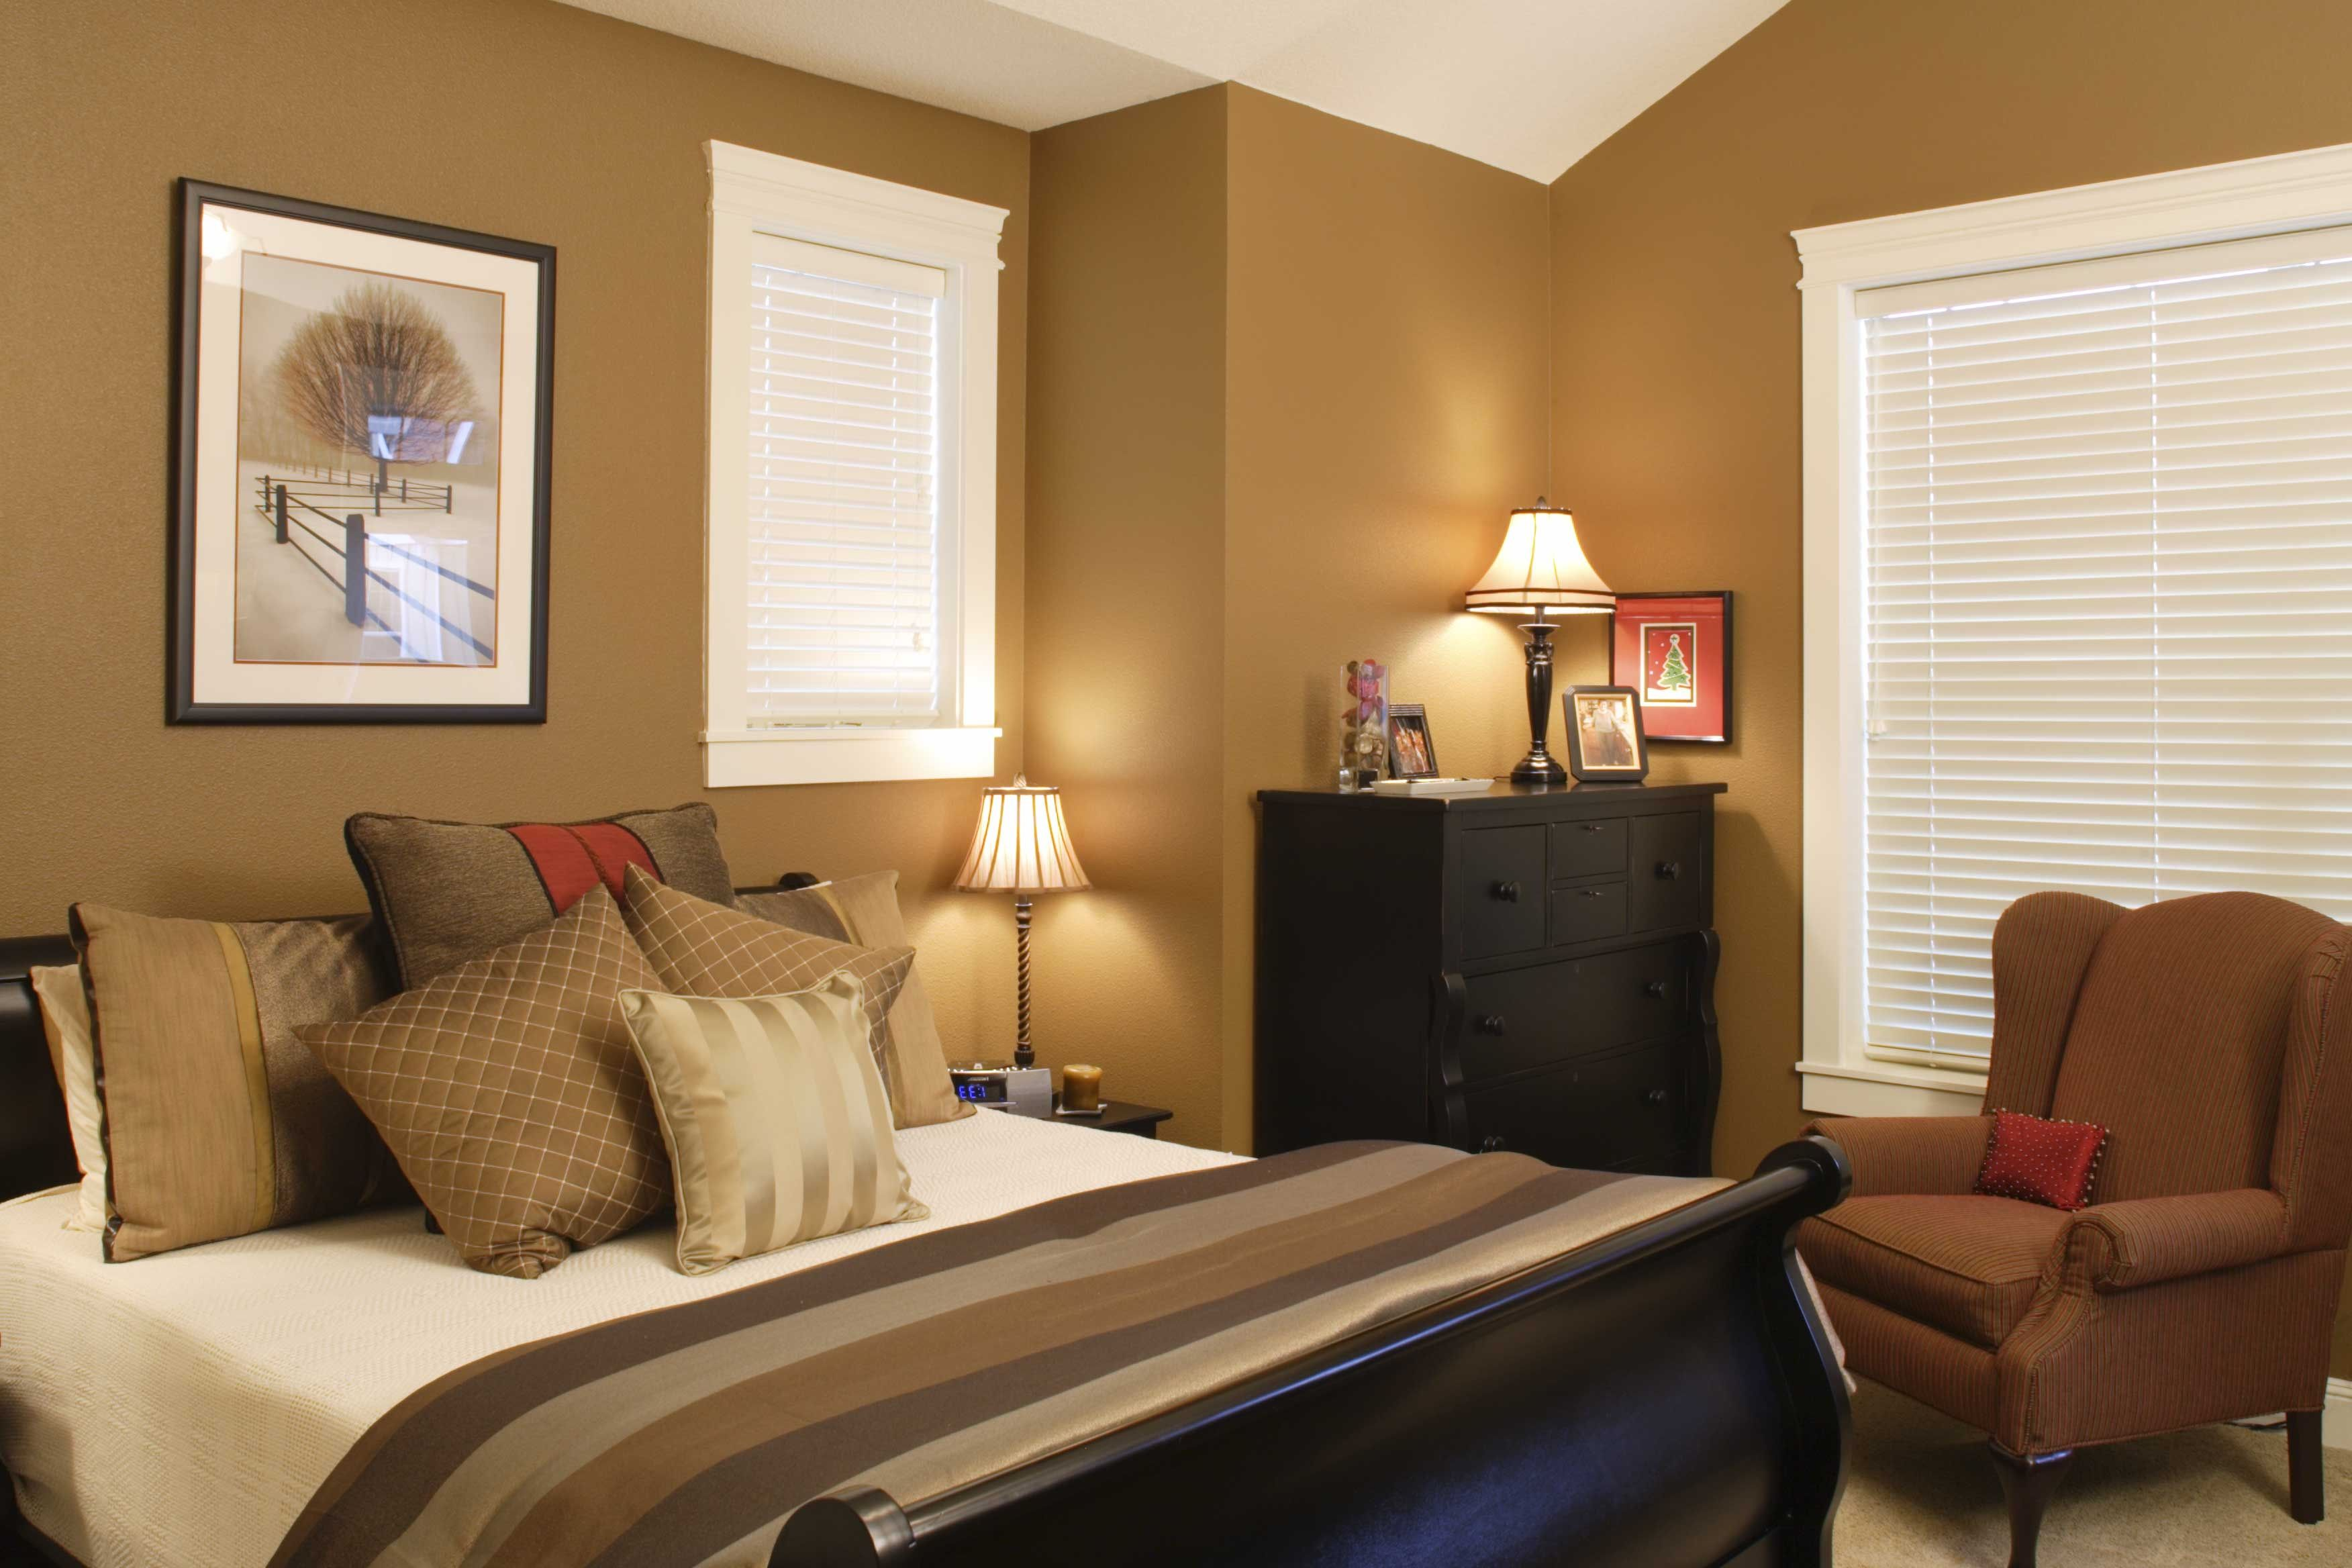 9 Small Bedroom Color Ideas 35 Photos Small Bedroom Colours